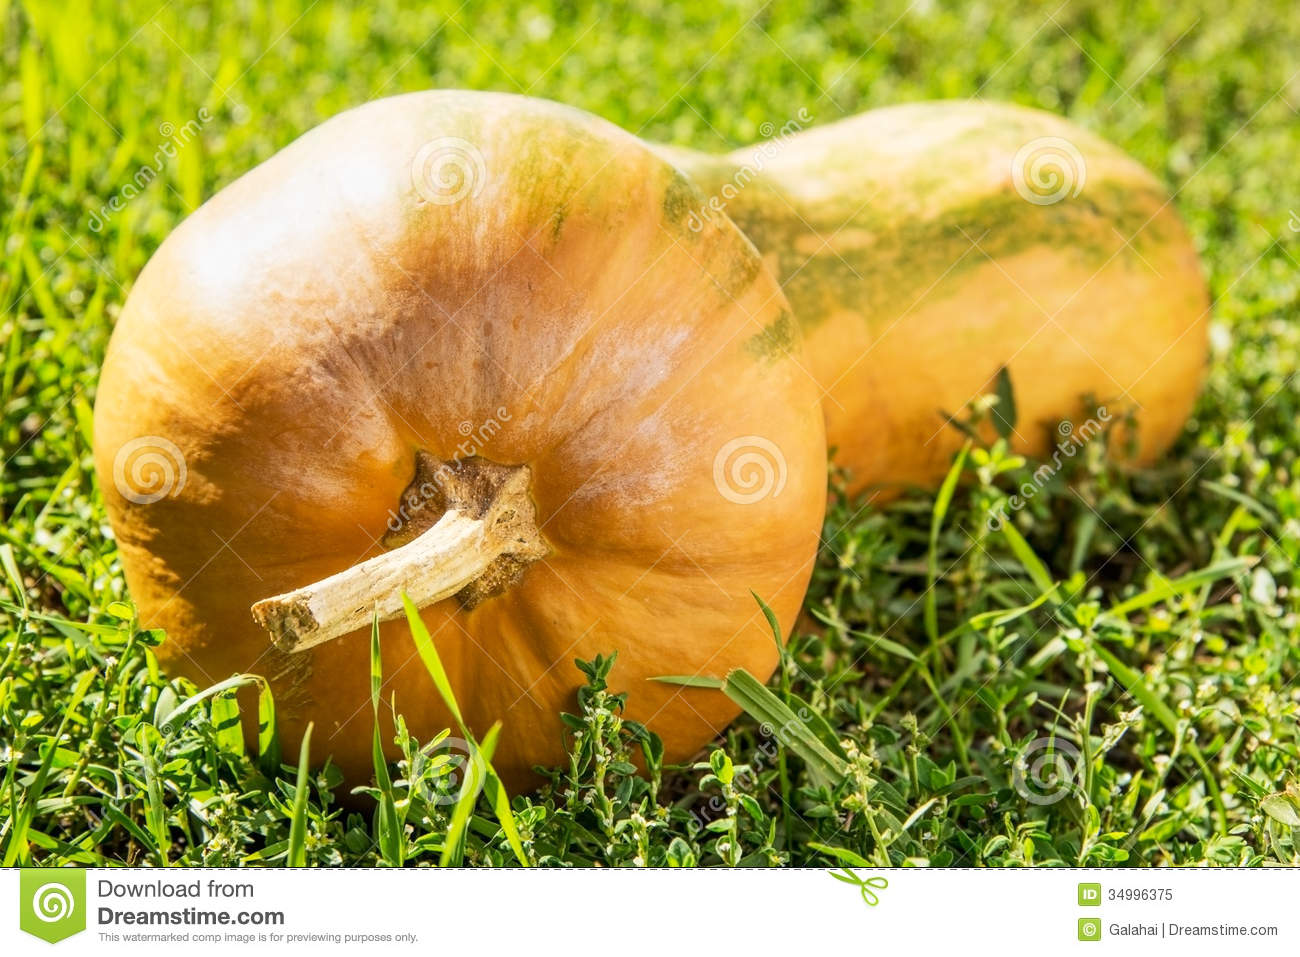 (Cucurbita moschata) on a